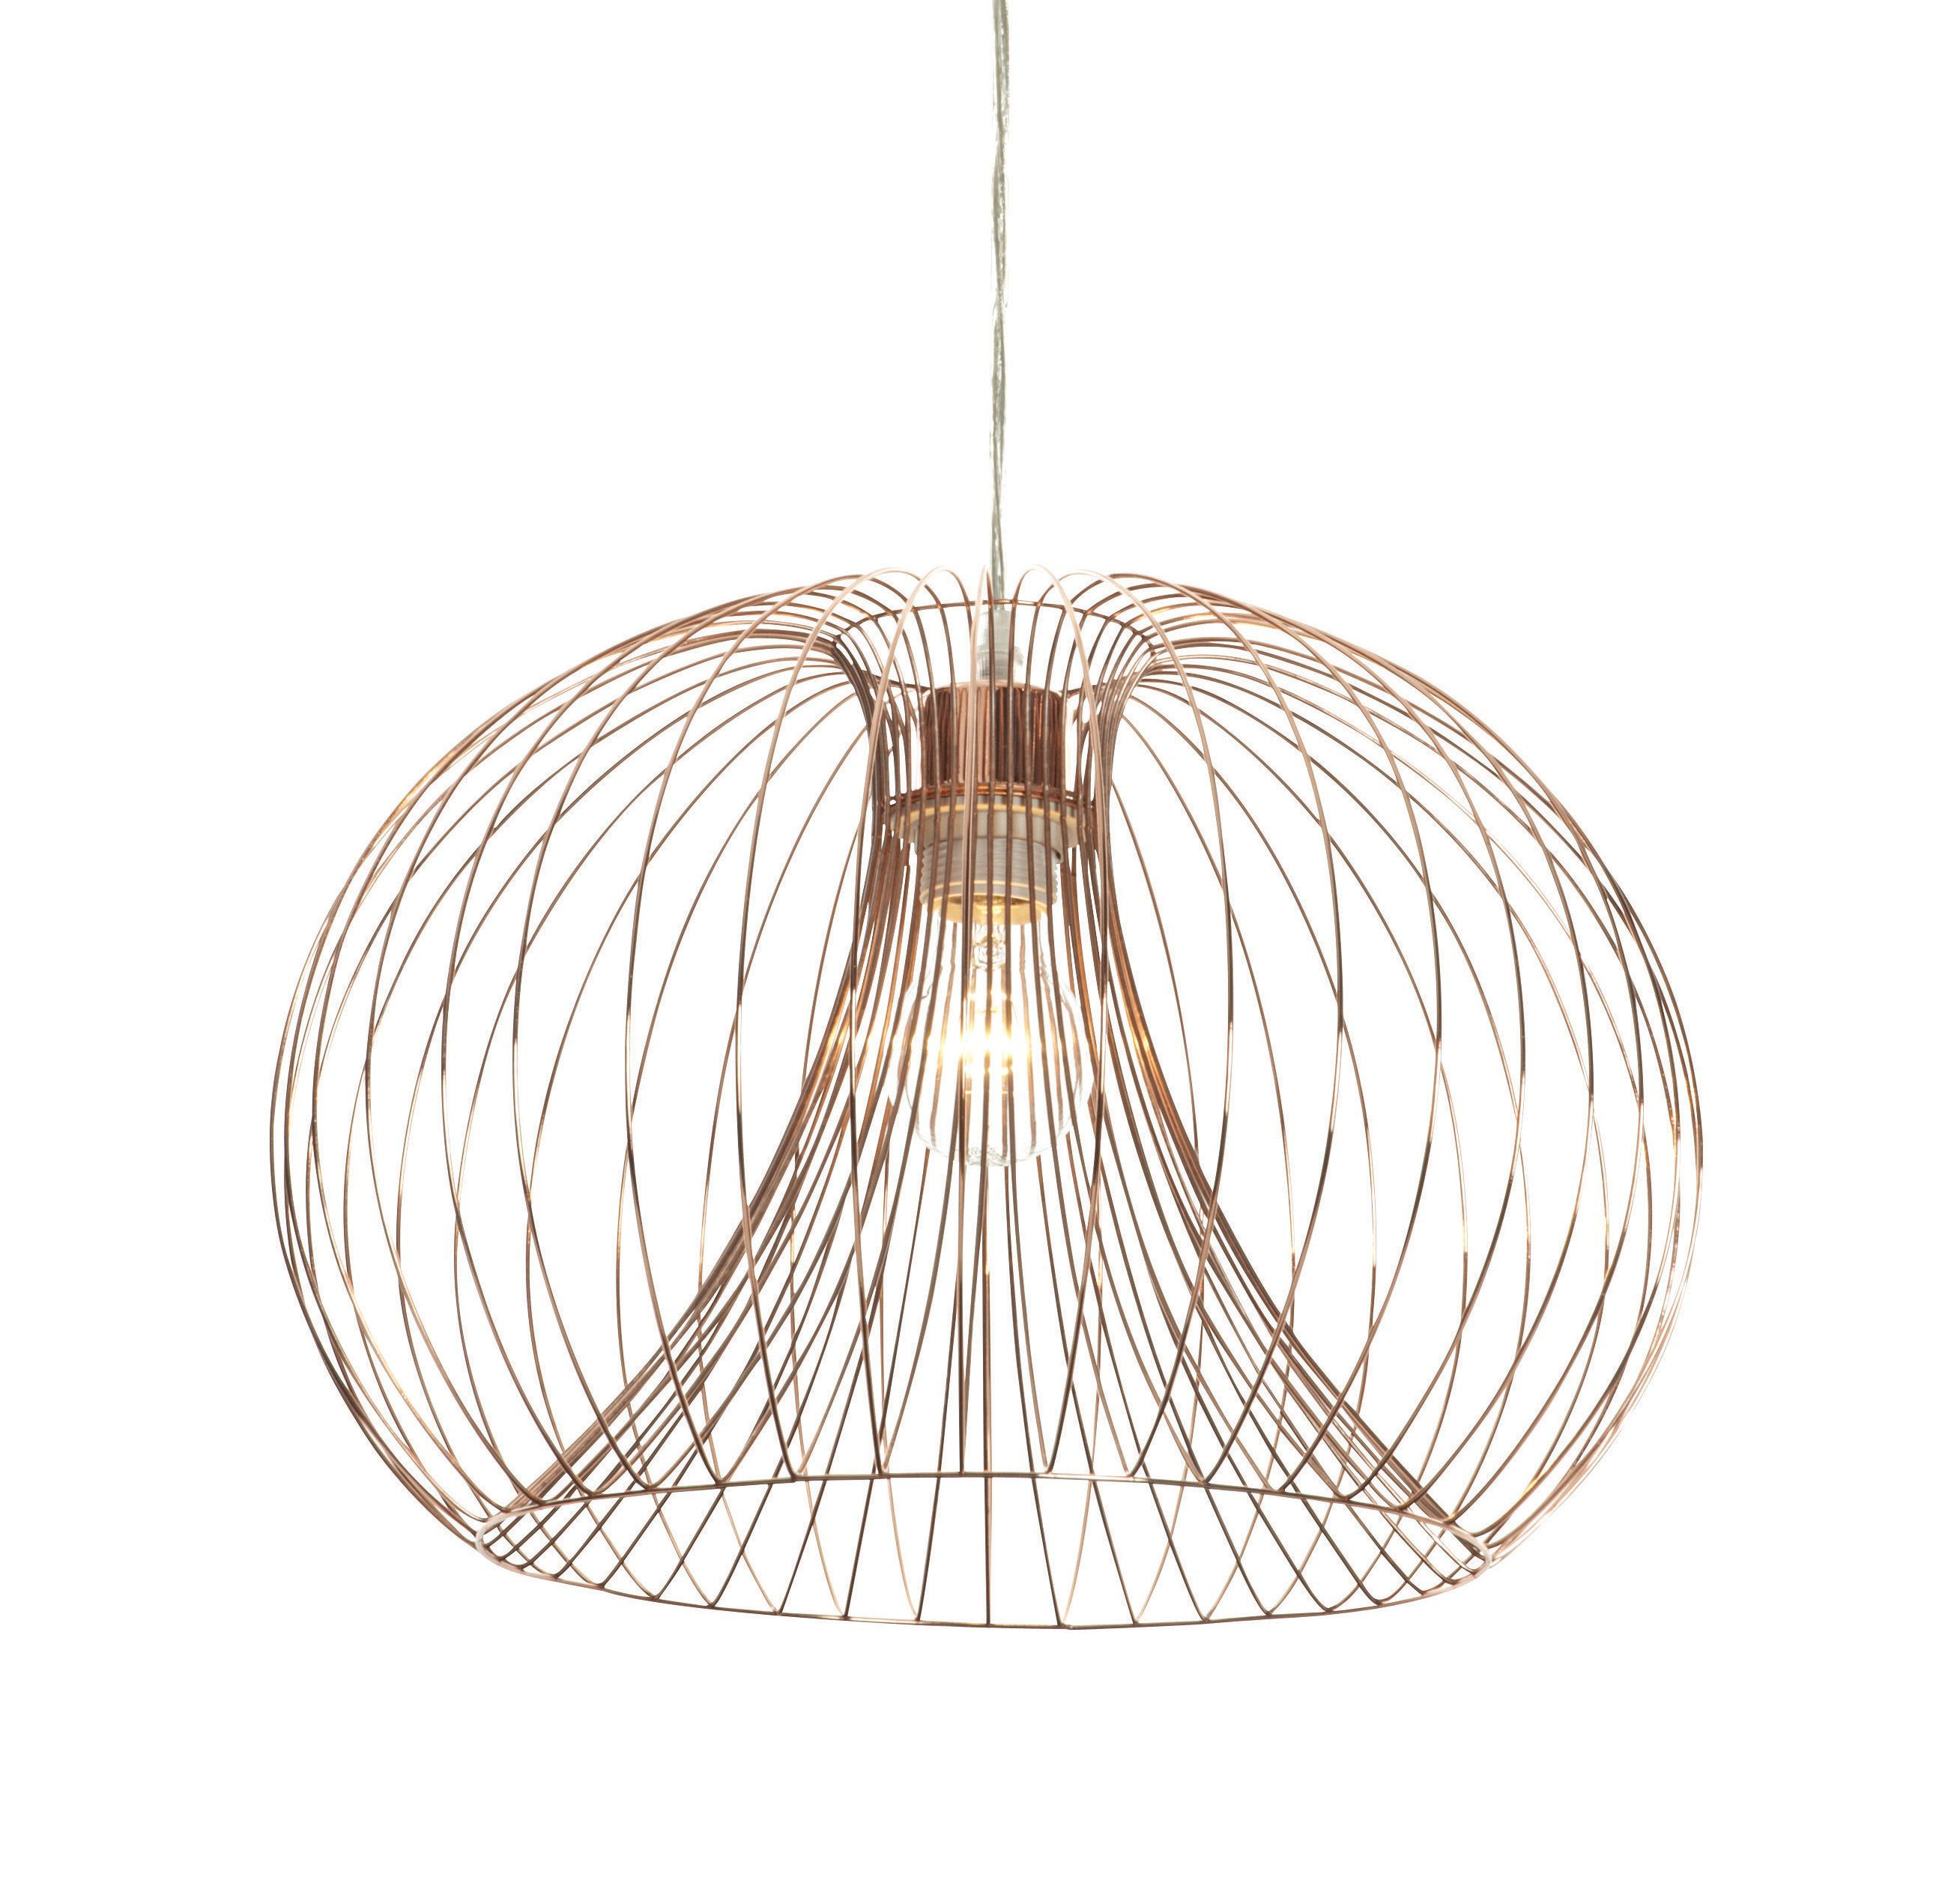 hight resolution of creative rustic lighting ideas in 2019 for the home bedroom jonas copper wire pendant ceiling light